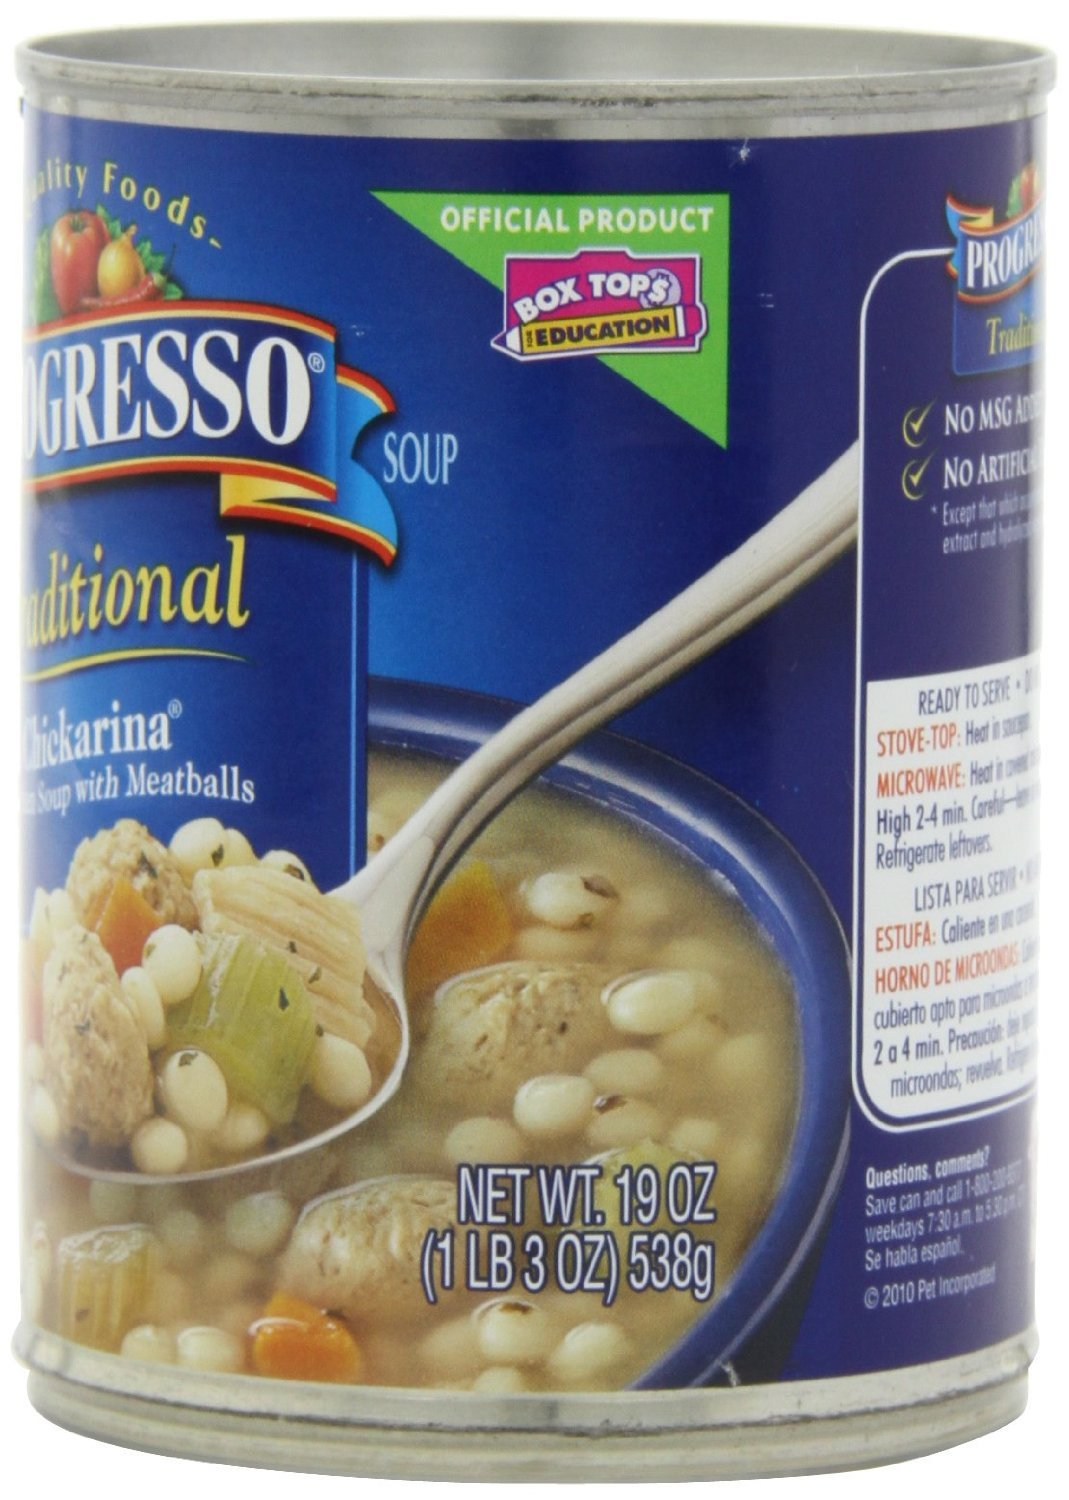 Amazon.com : Progresso Traditional Chickarina Soup 19 oz (Pack of 12)  : Grocery & Gourmet Food